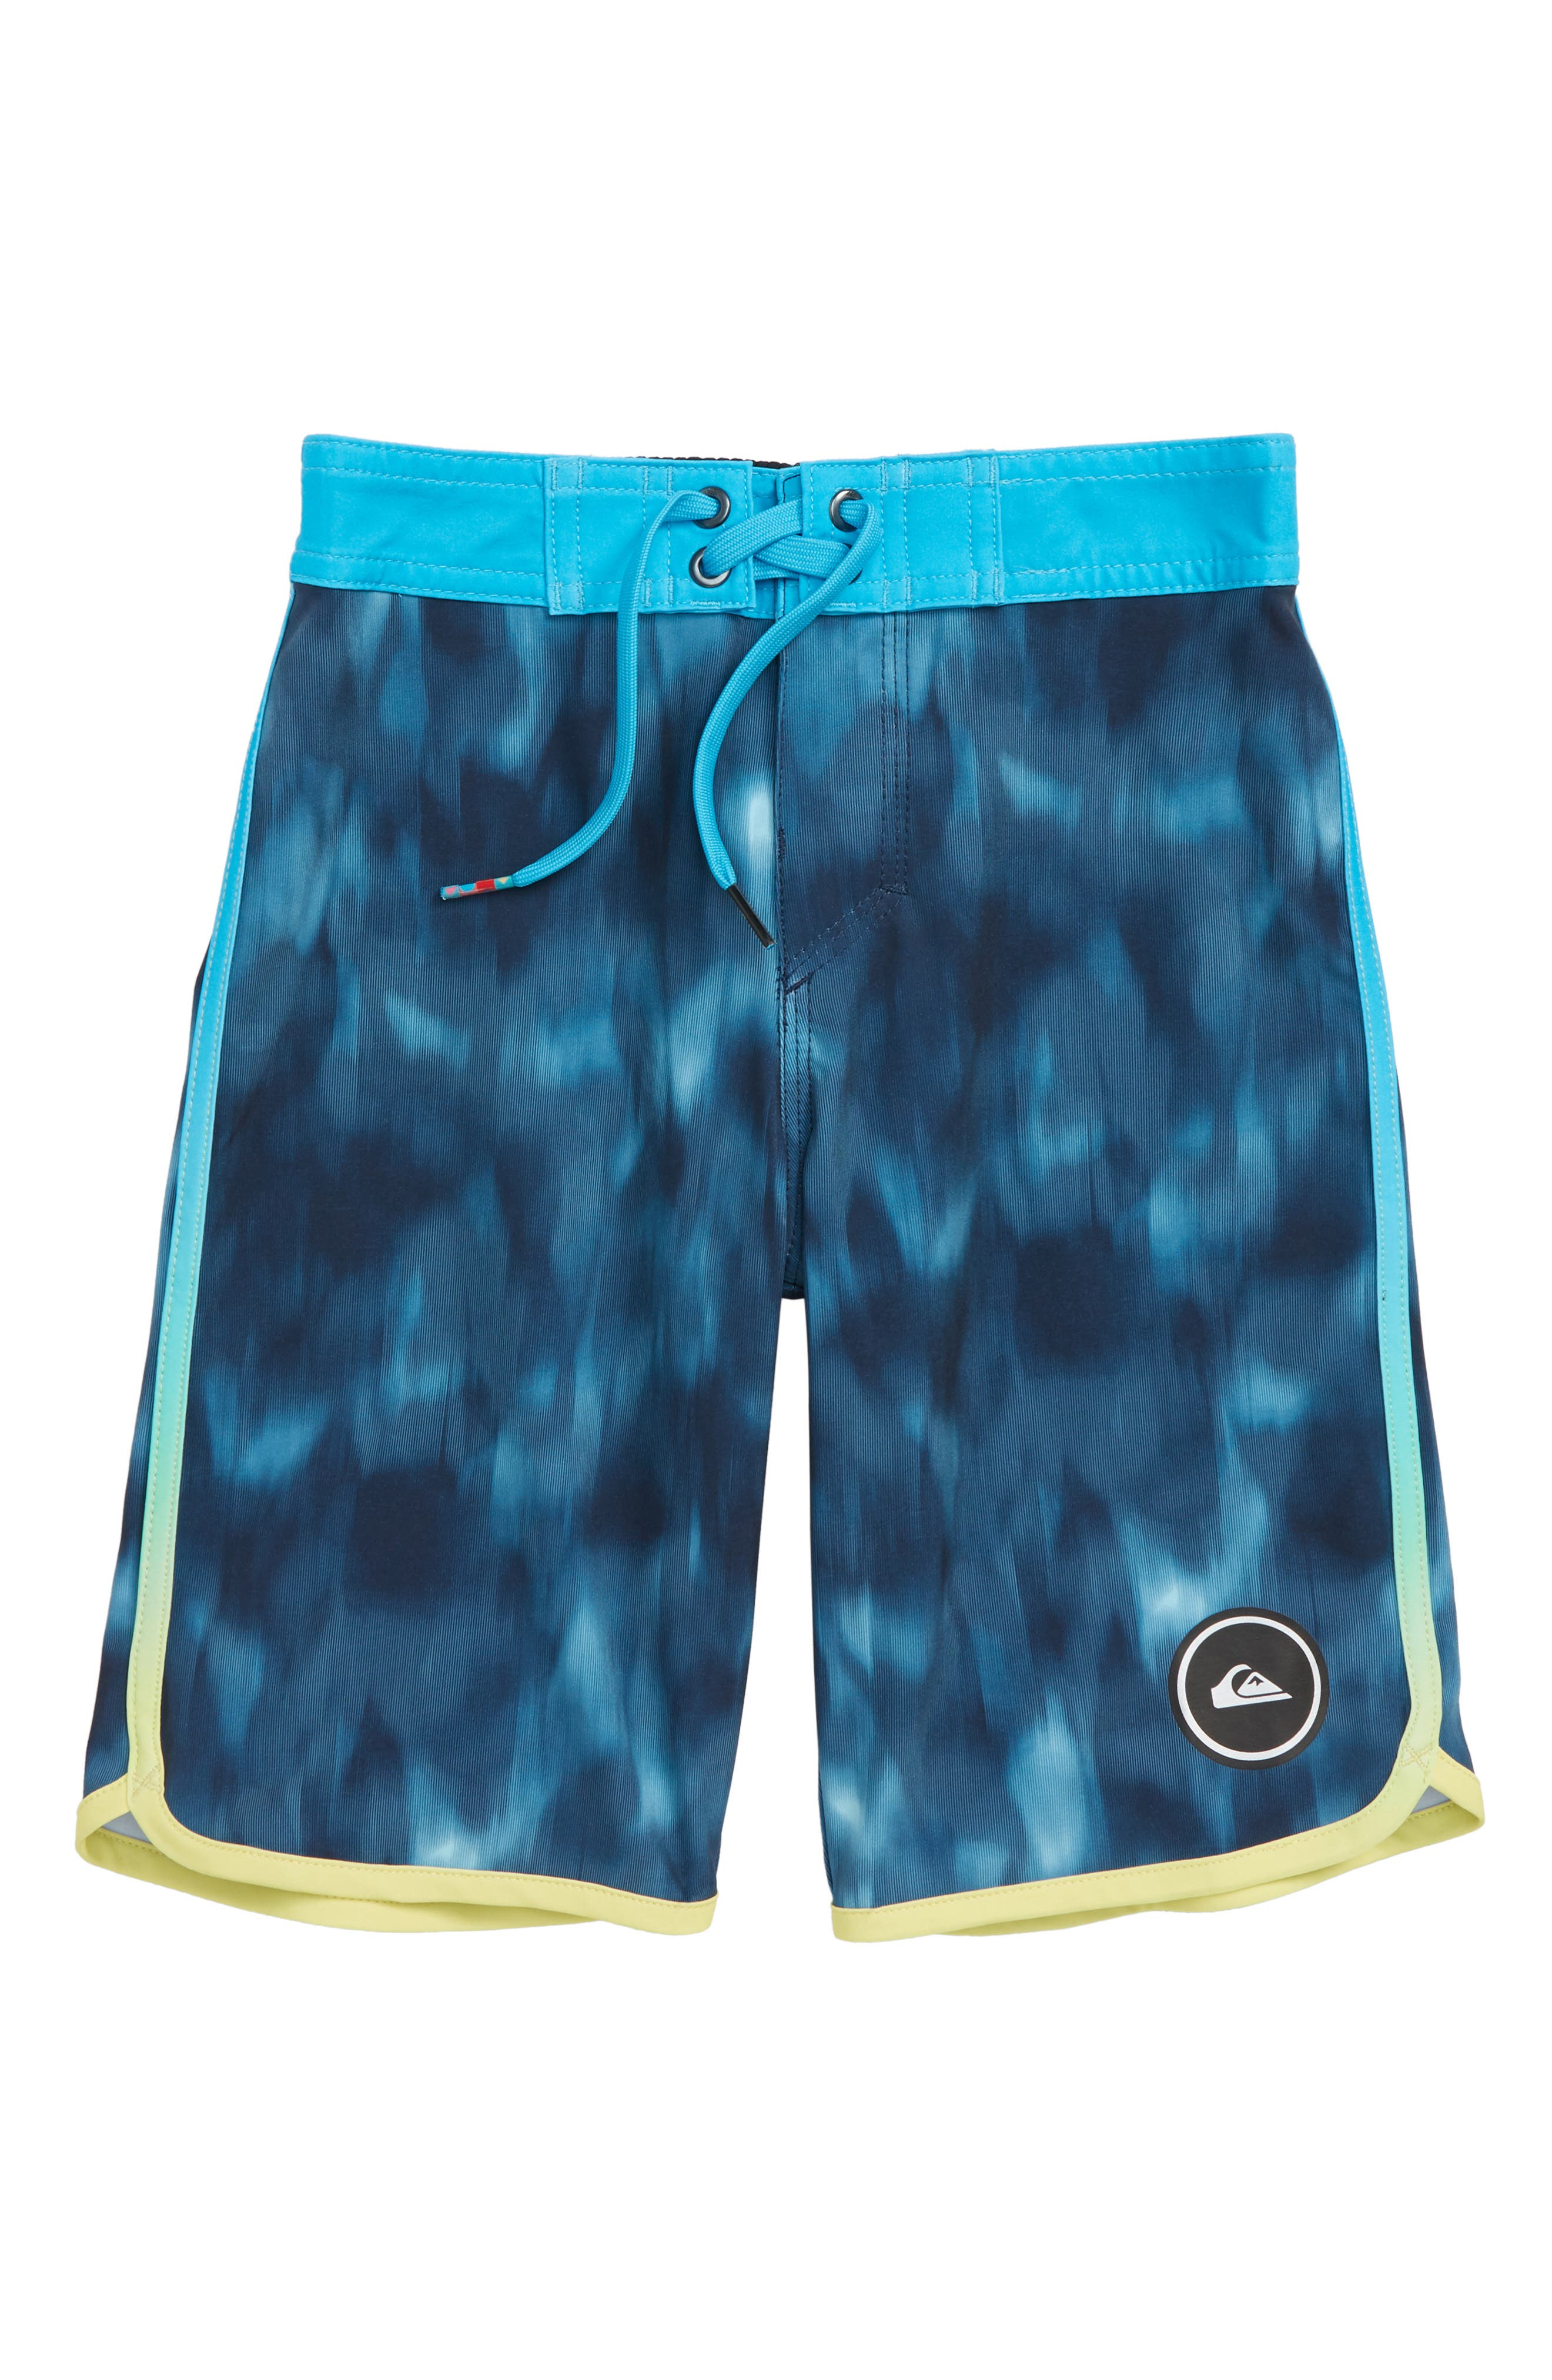 Highline Recon Board Shorts,                         Main,                         color, REAL TEAL